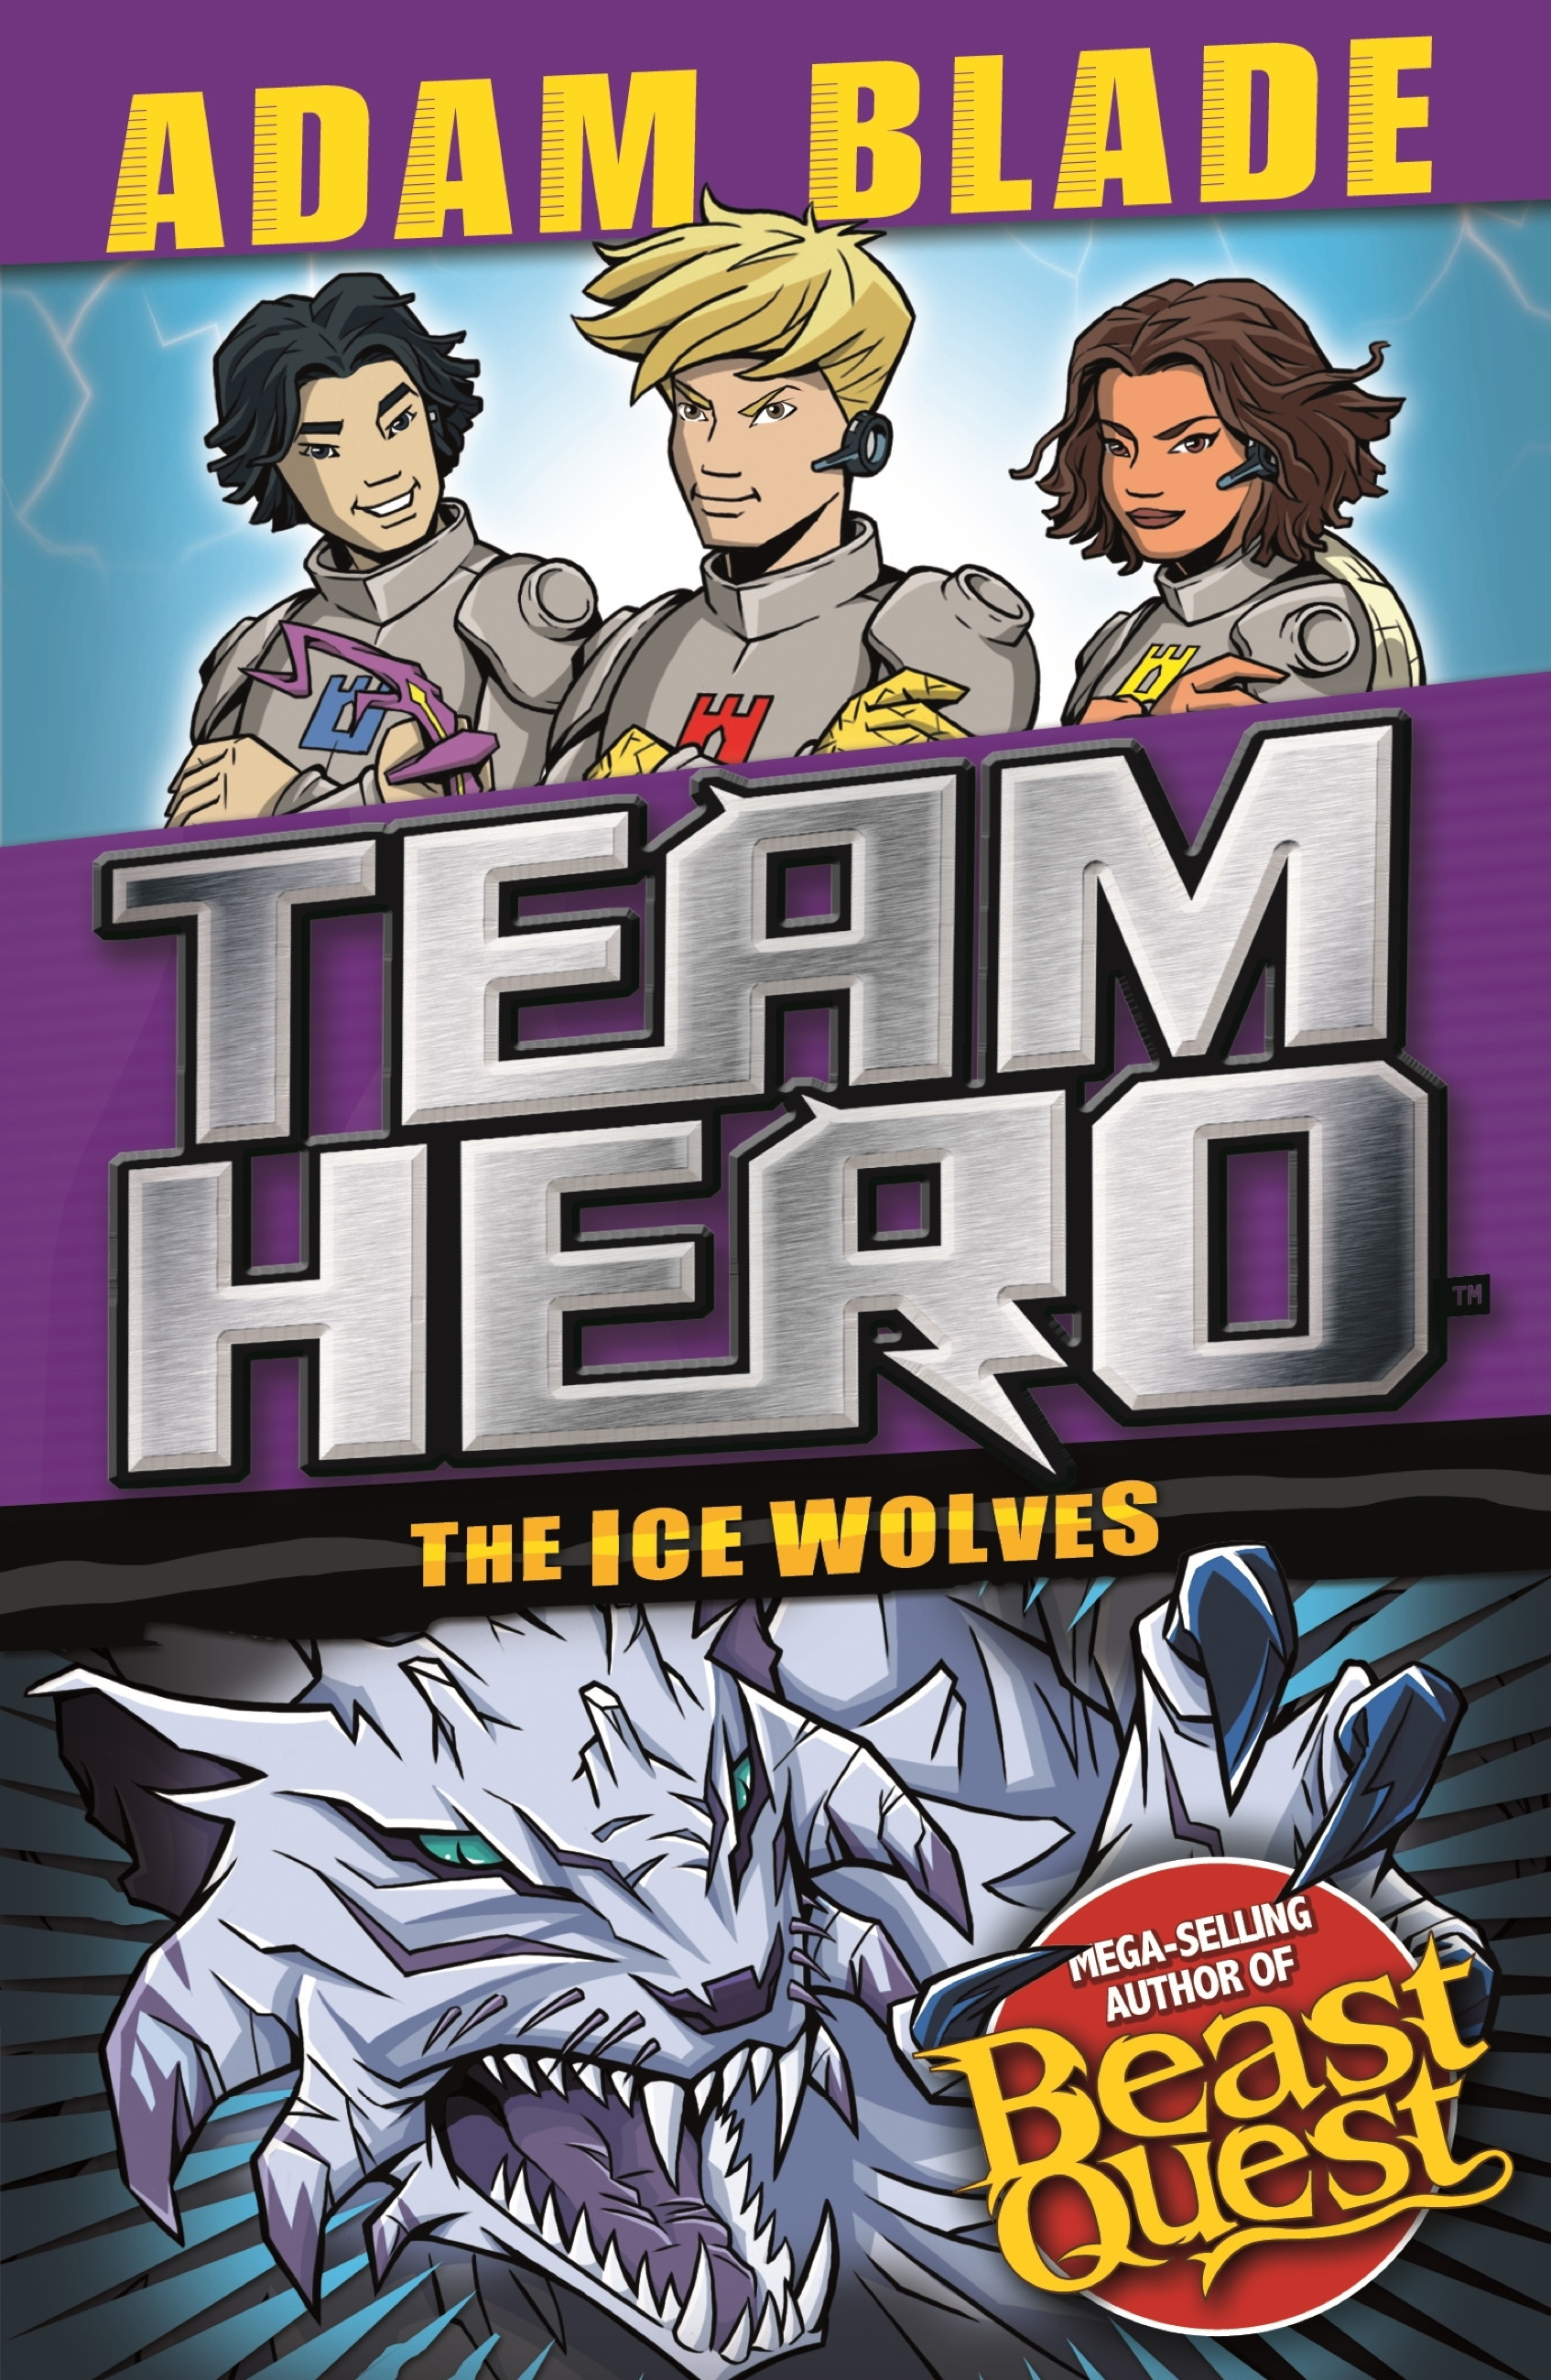 The Ice Wolves